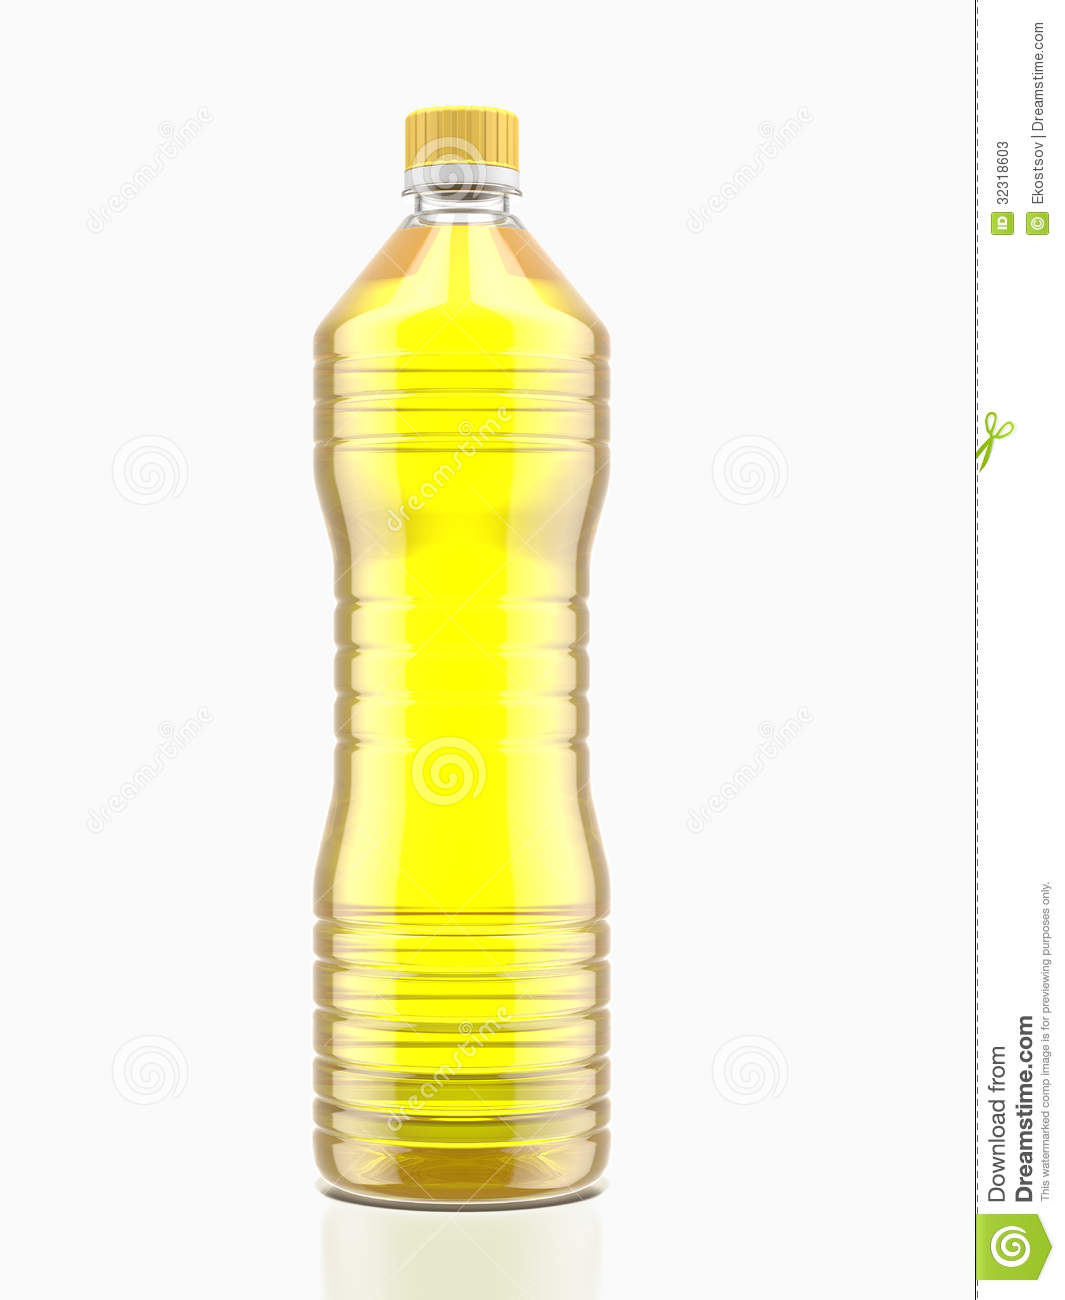 Bottle of cooking oil stock illustration. Image of object ...